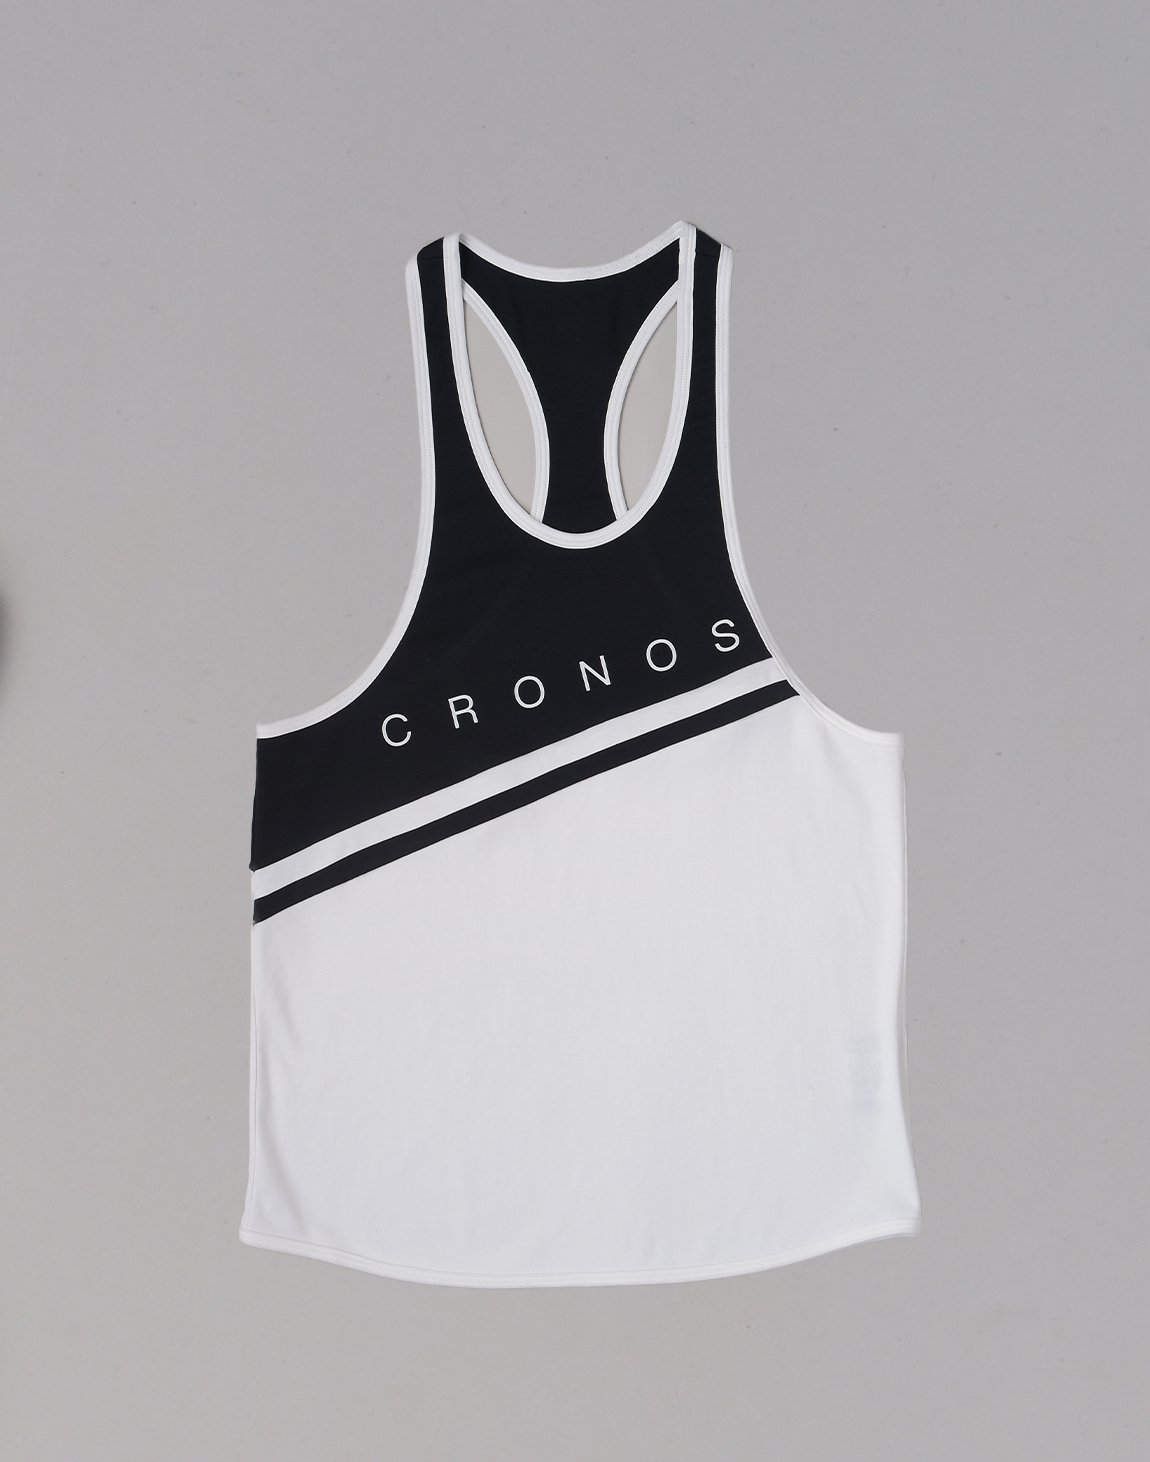 <img class='new_mark_img1' src='https://img.shop-pro.jp/img/new/icons1.gif' style='border:none;display:inline;margin:0px;padding:0px;width:auto;' />CRONOS Bi-COLOR LINE TANKTOP【WHITE】